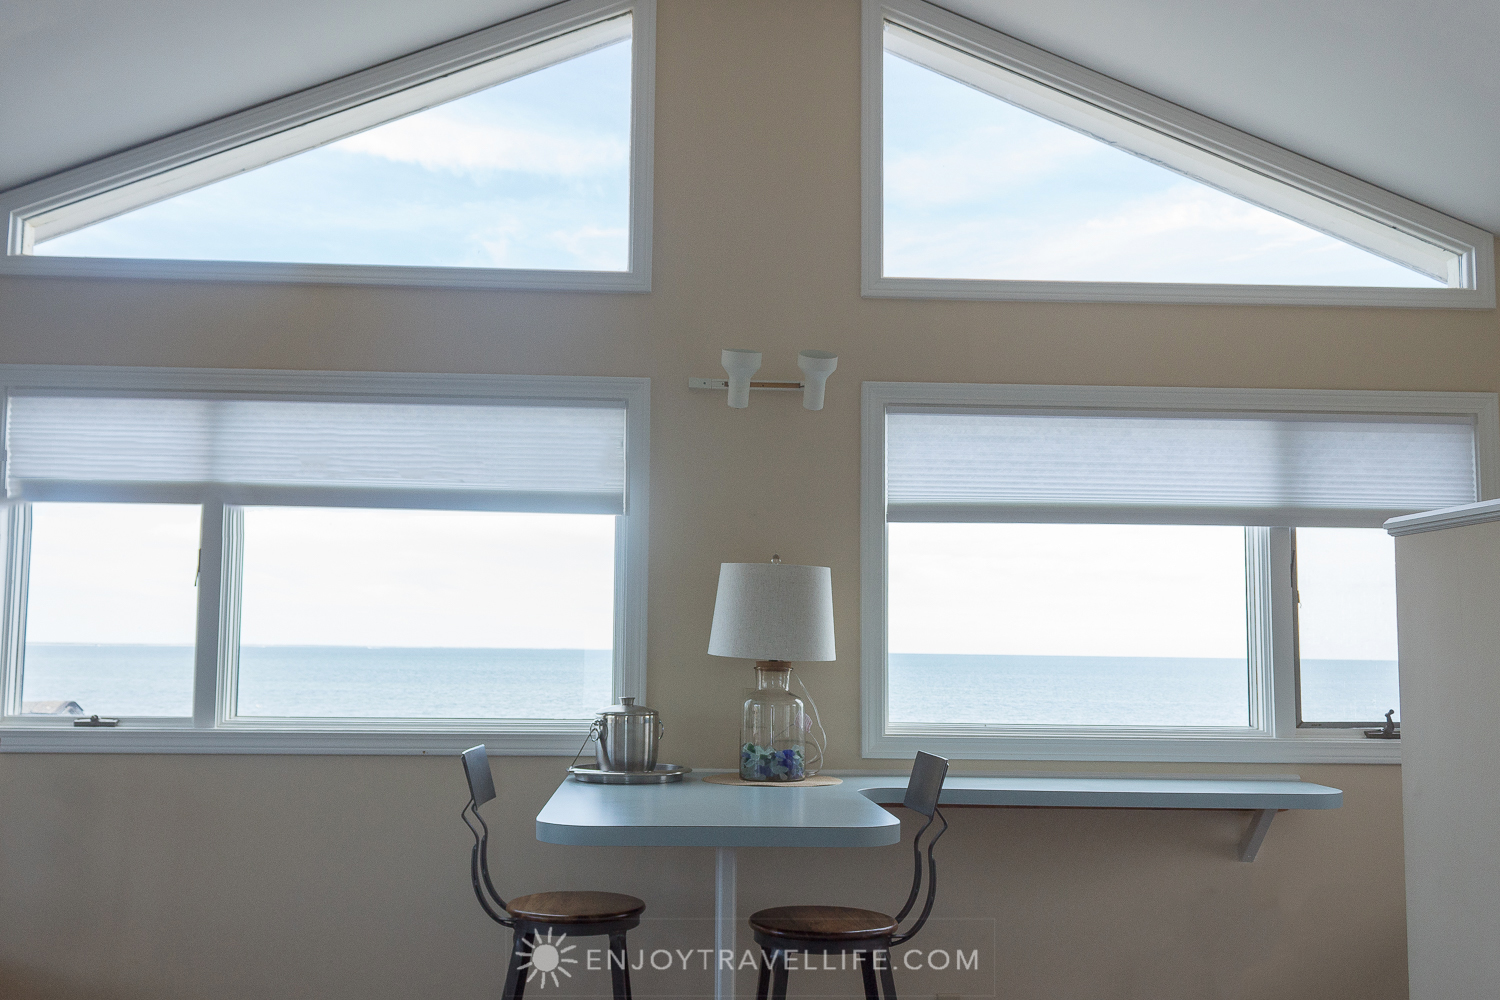 Waterfront Weekend in Chatham - Chatham Tides Inn 2 BR Suite